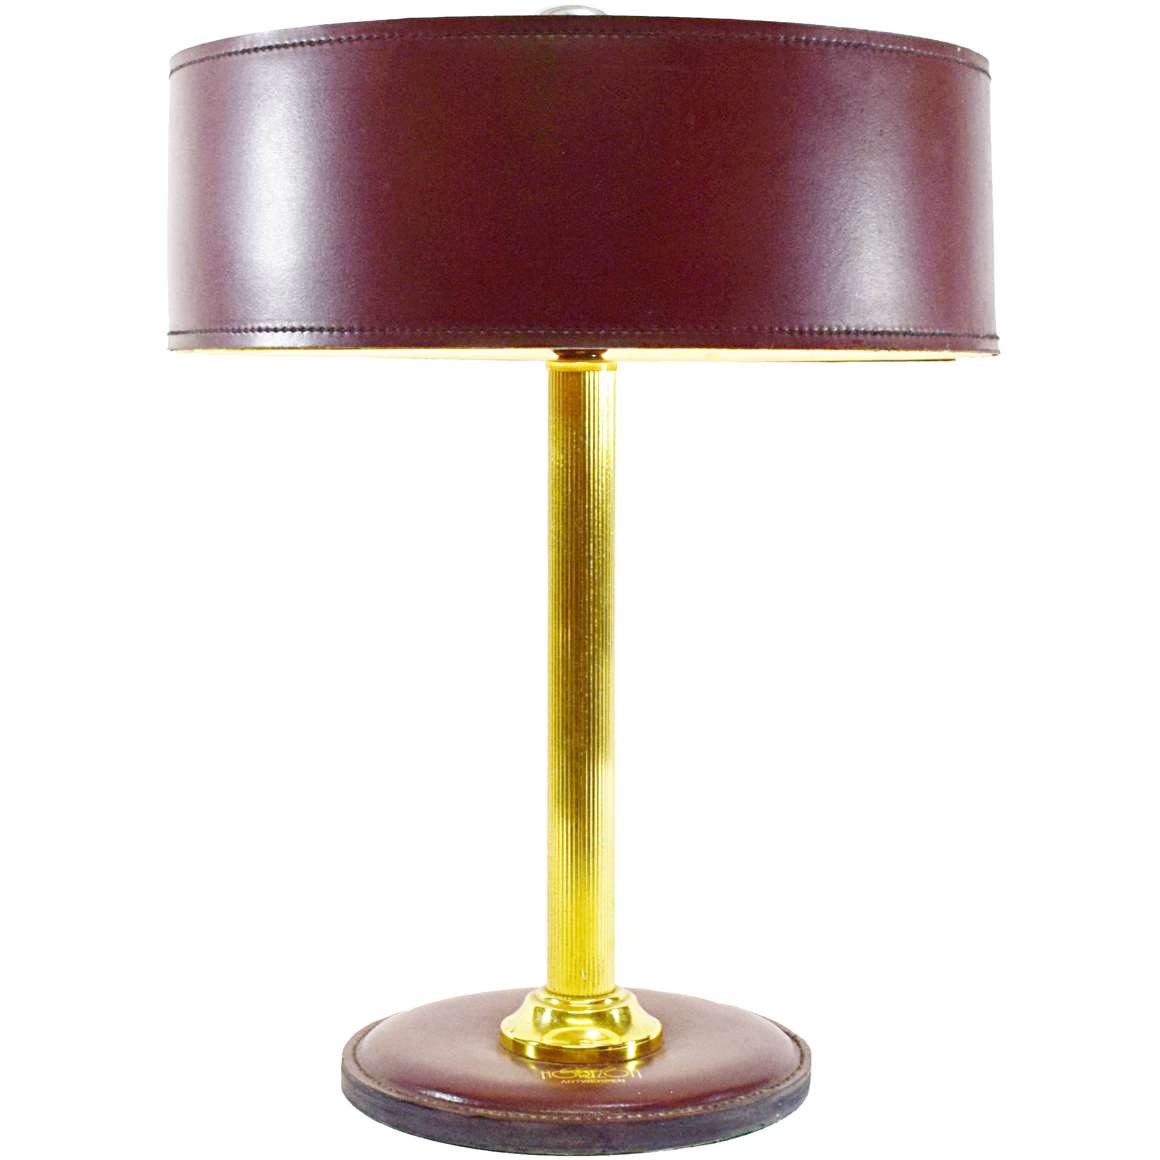 Maroon Leather Desk Lamp